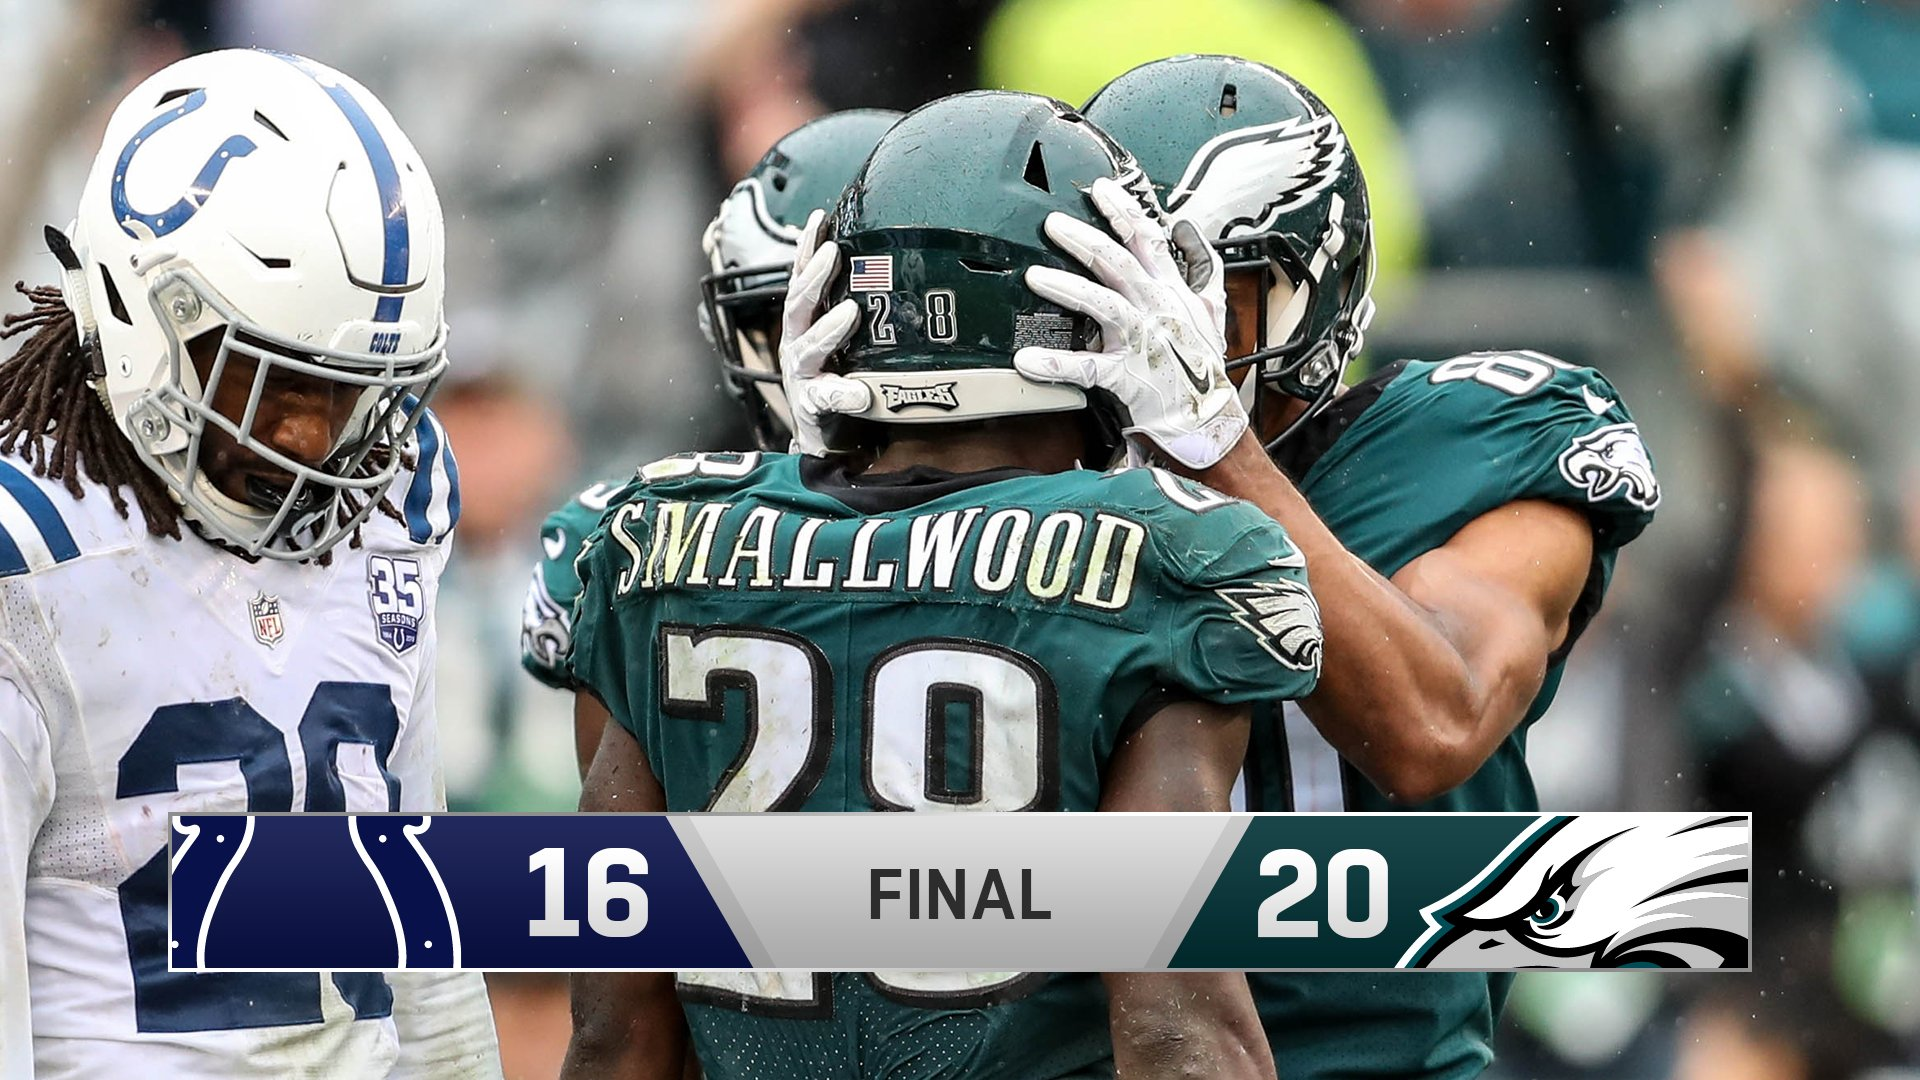 Whatever it takes.  #FlyEaglesFly https://t.co/N9QIHrhTAC